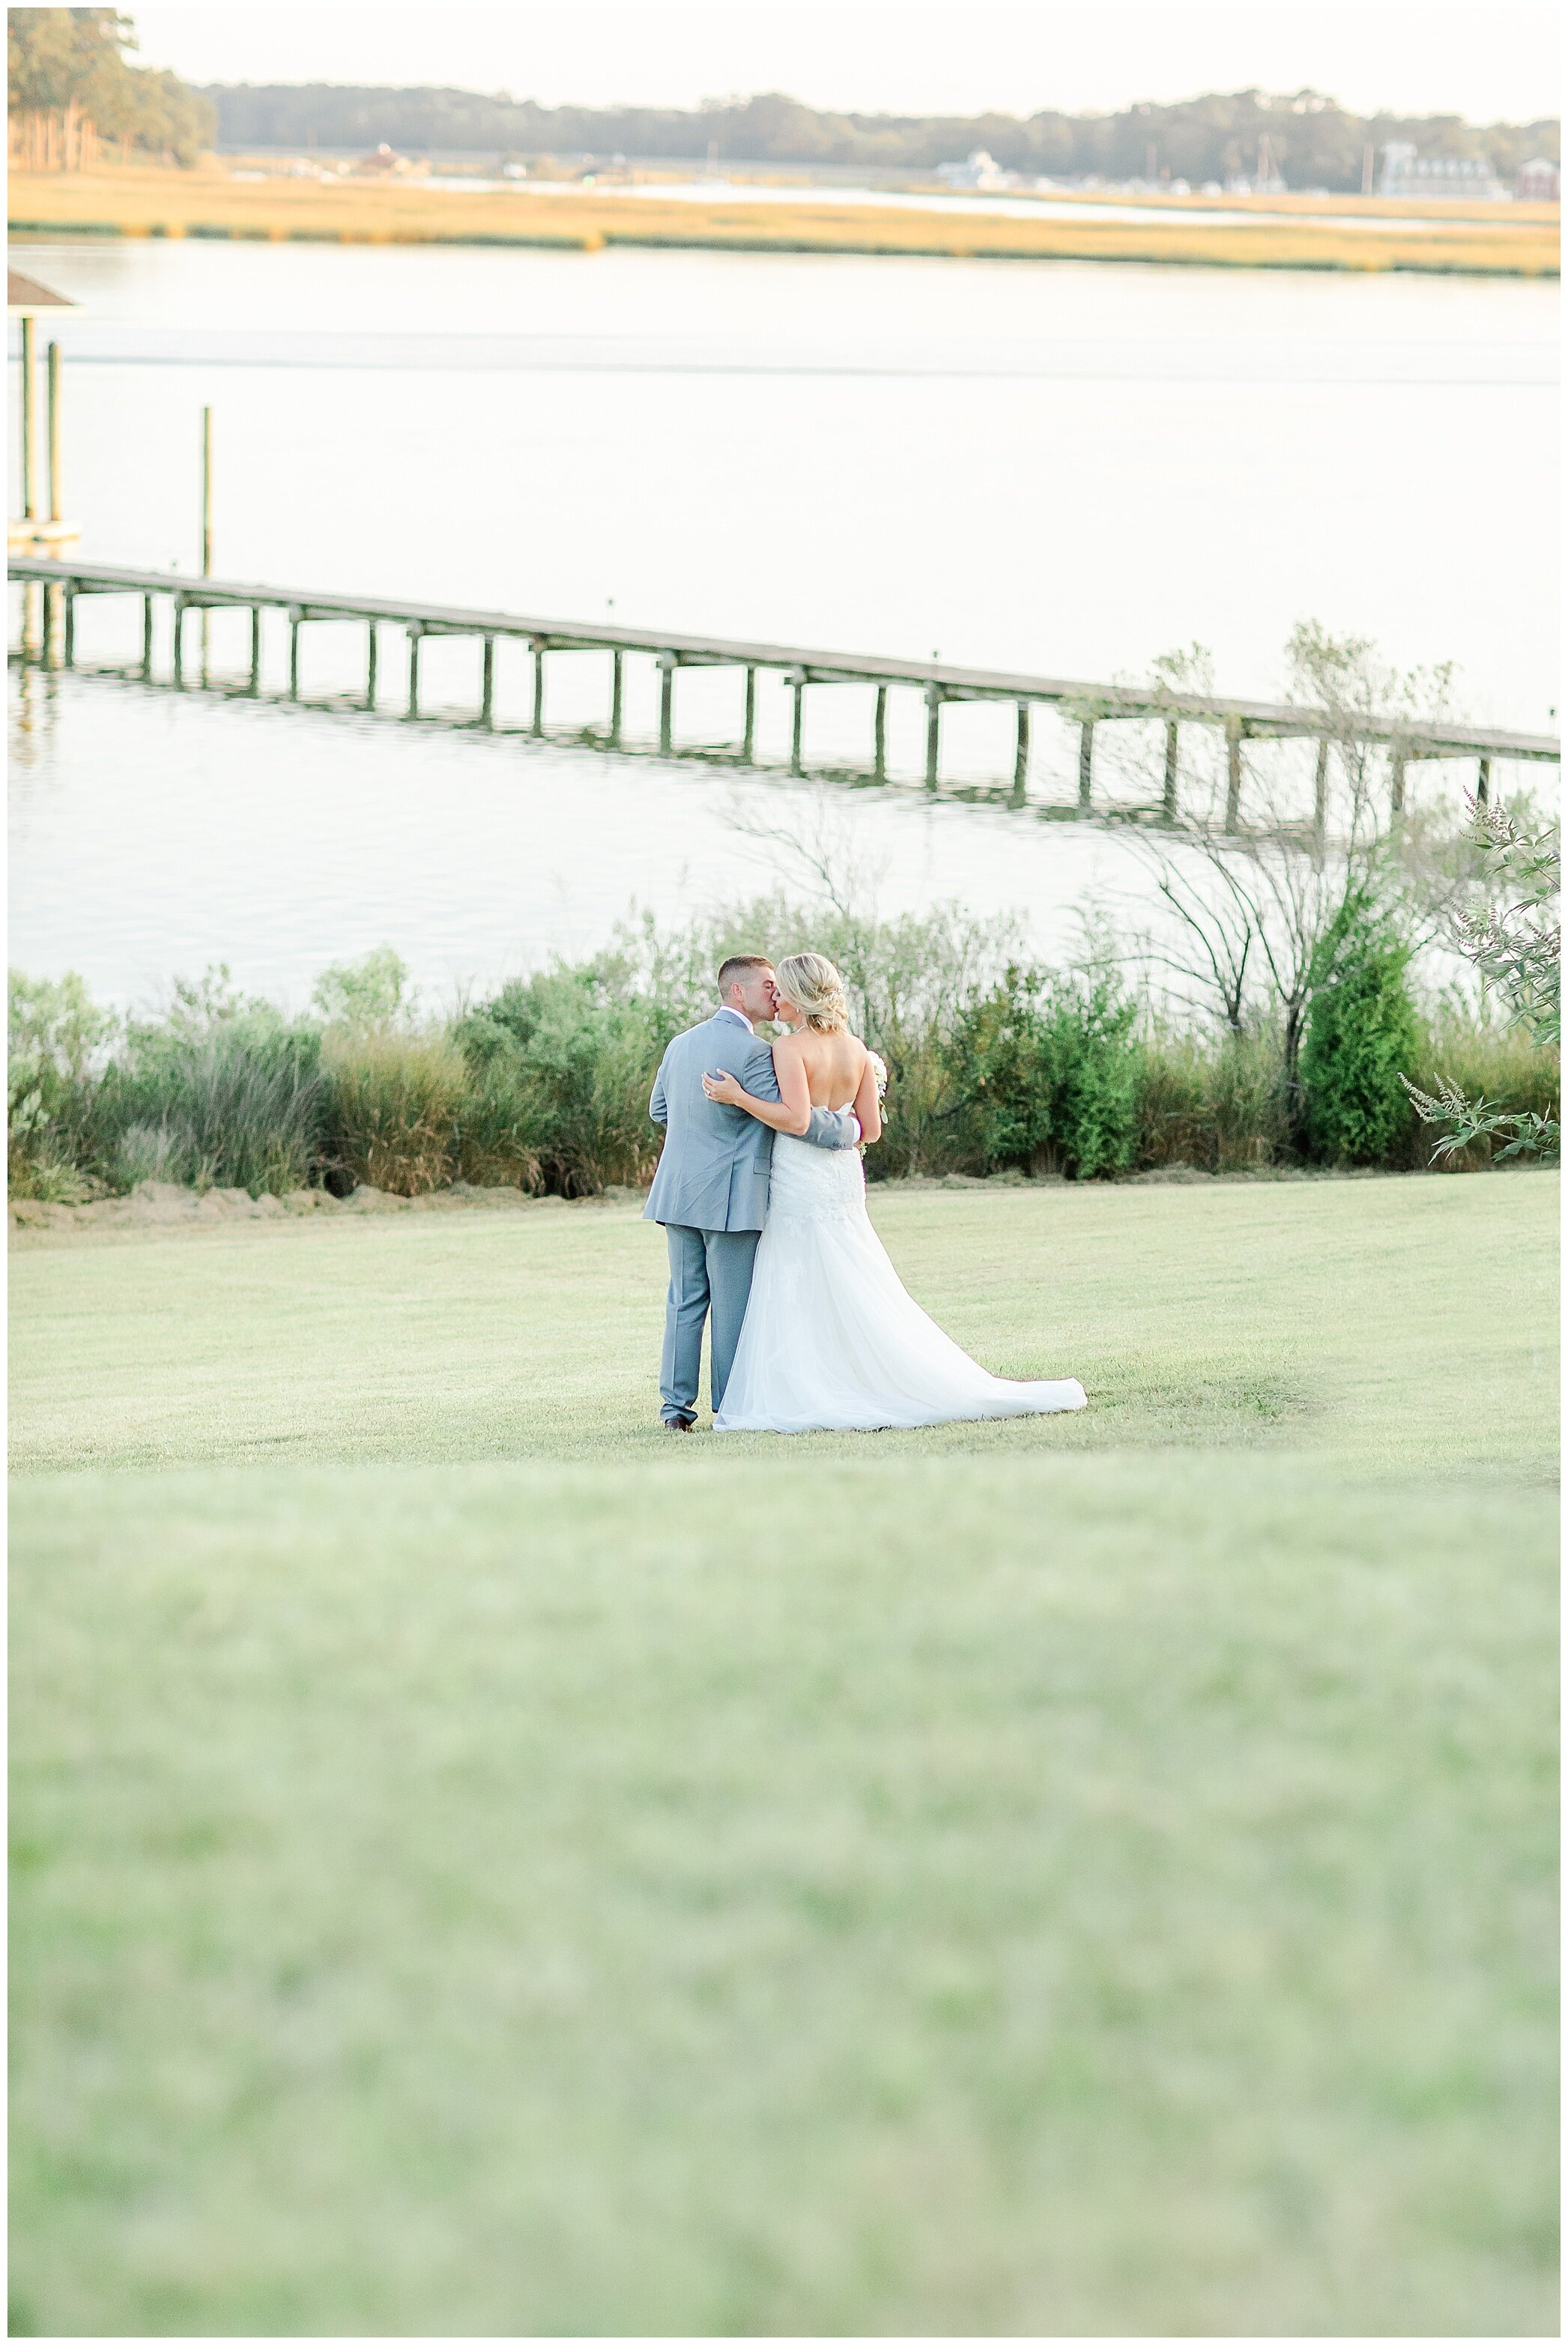 Last shot of the evening with the sun beginning to set. I loved the golden glow off the water. Congrats Mr. and Mrs. Corbett!!!